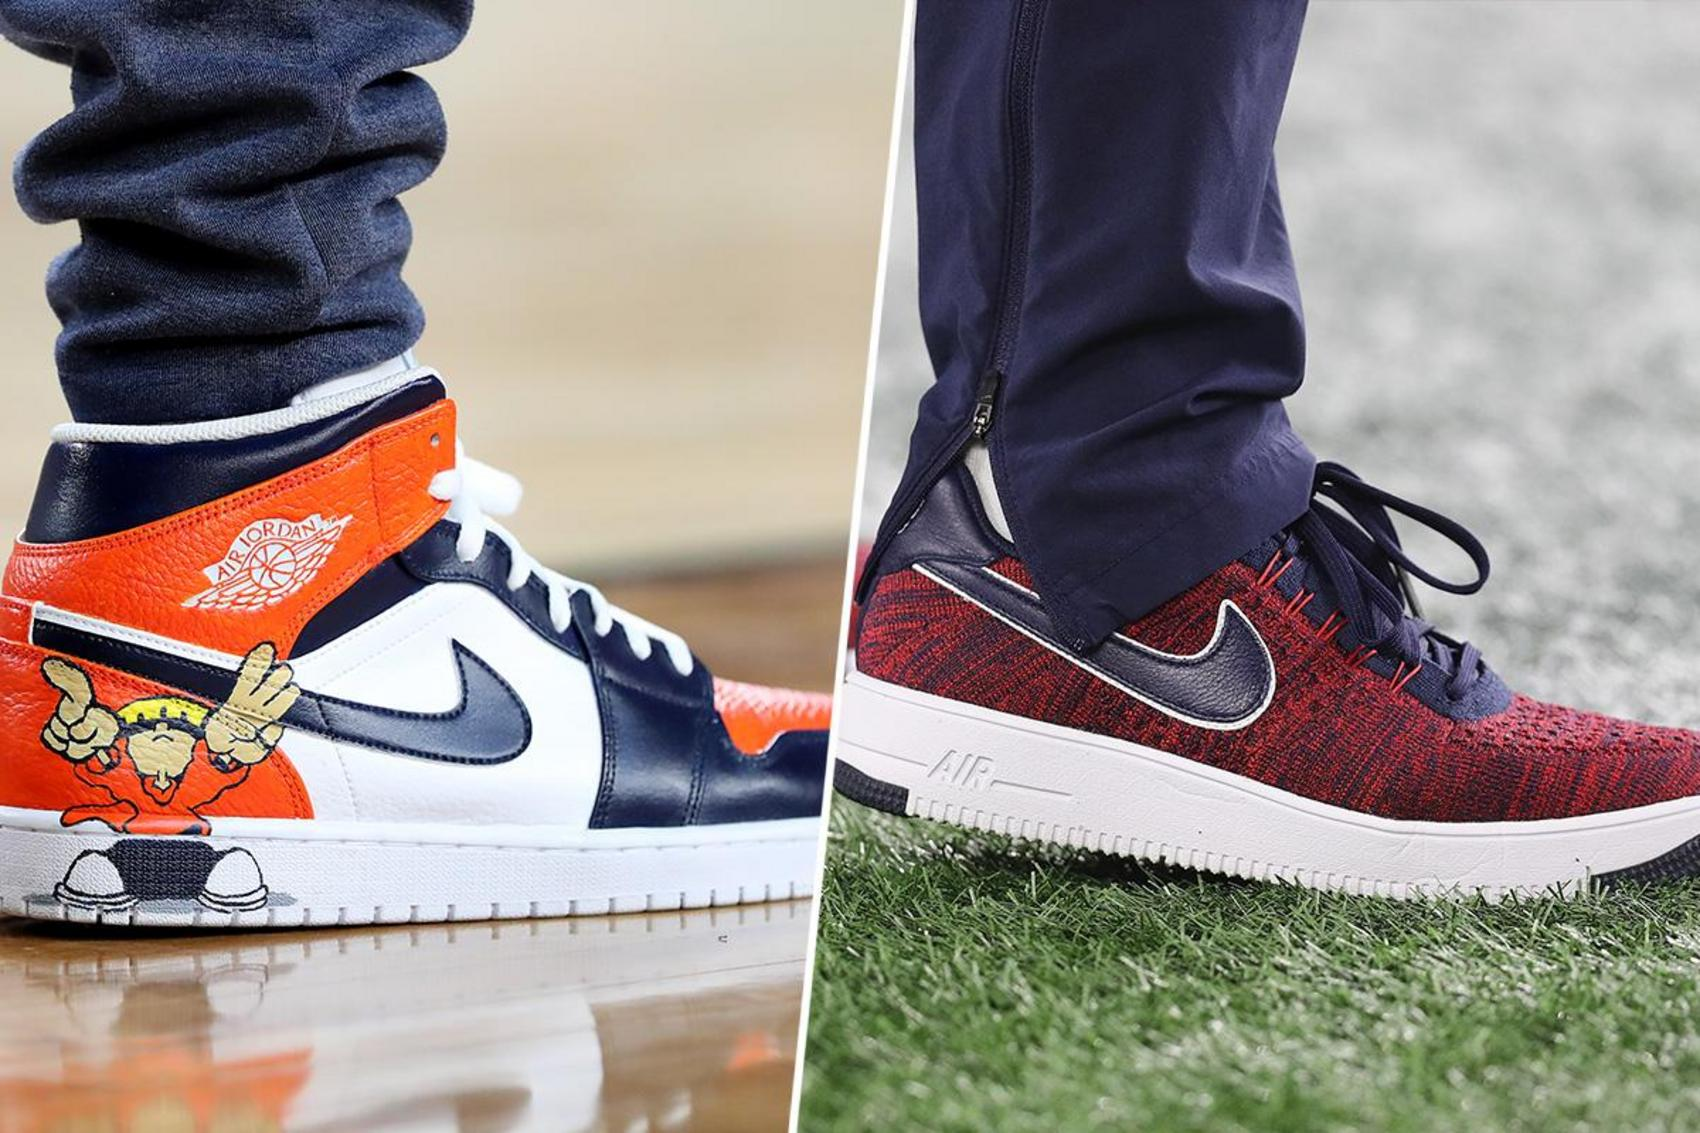 Most iconic sneaker: Air Jordans or Nike Air Force 1? | The Tylt